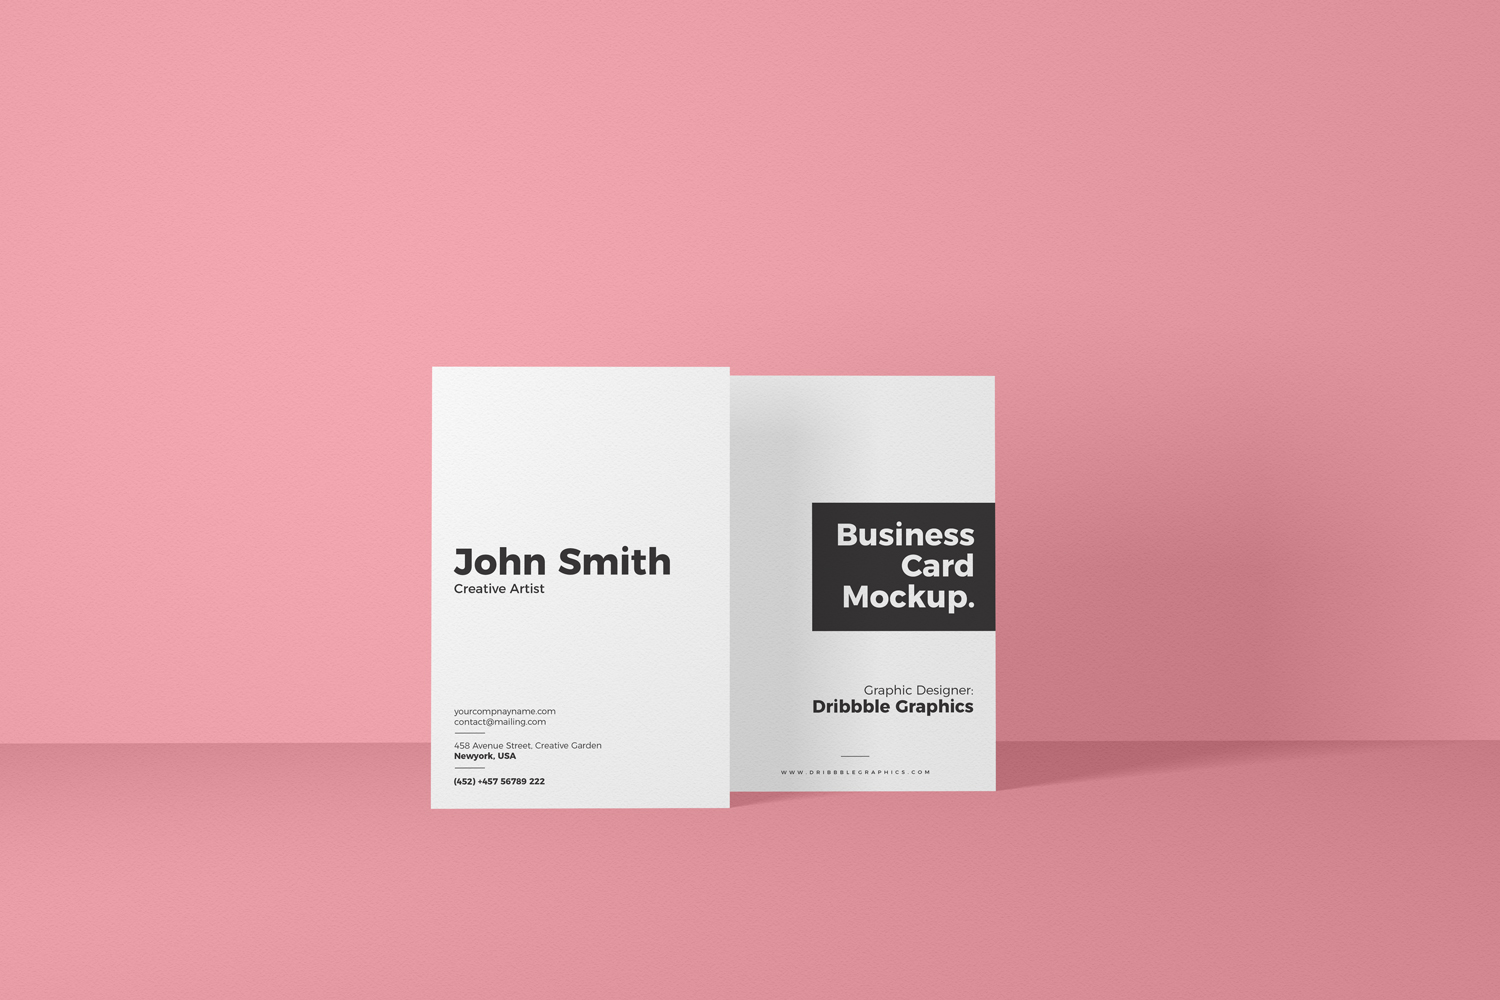 Free-Vertical-Front-View-Business-Card-Mockup-600